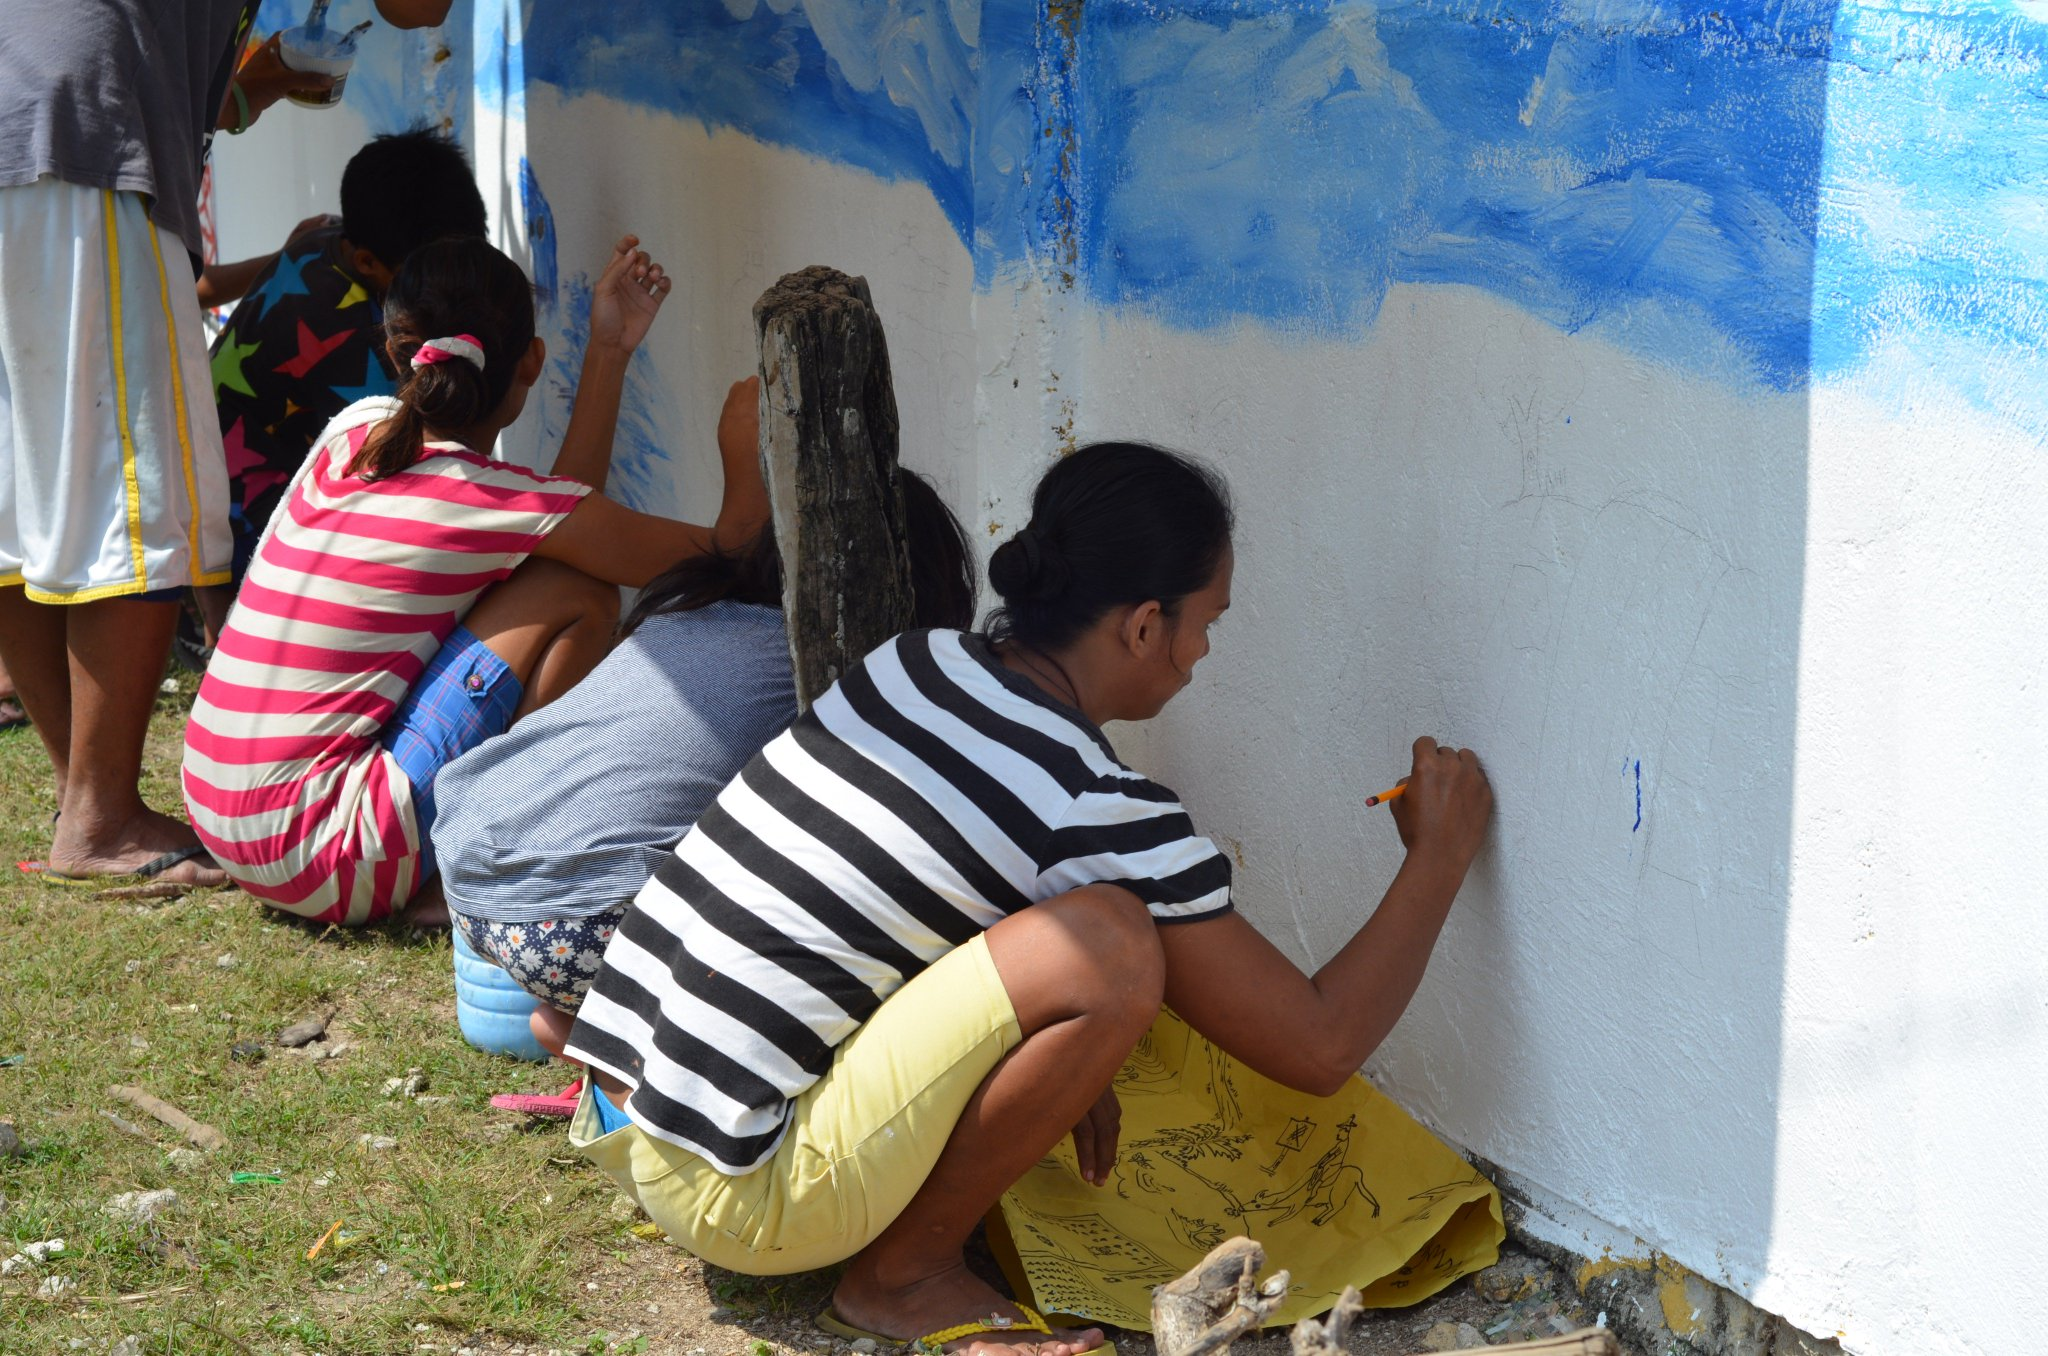 Women and girls participate on the design conceptualization and painting of the #iWaSH community mural in Bgy. Talib, Aroroy, Masbate. https://t.co/tSBpsDnpqu